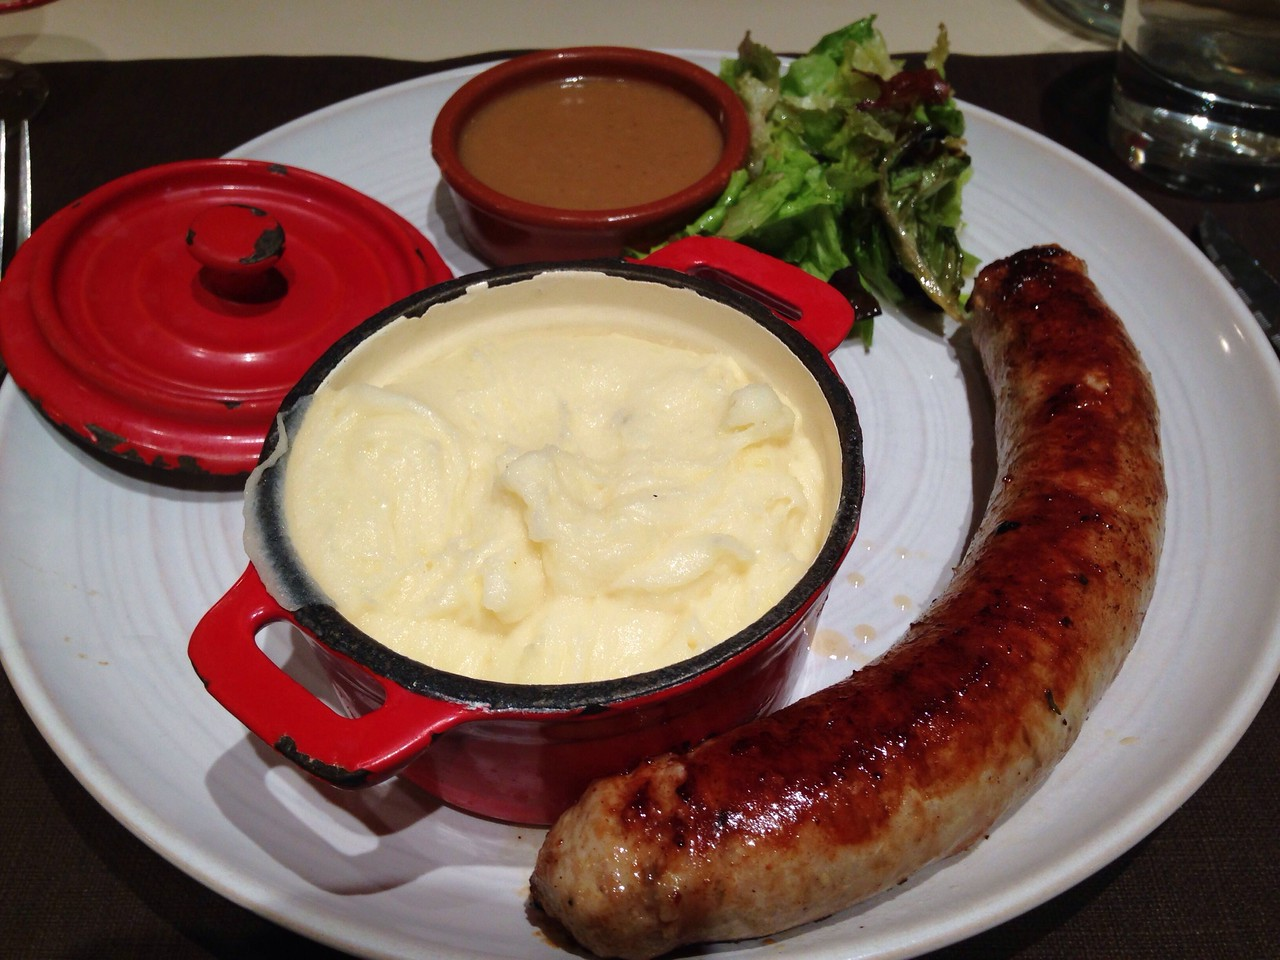 For main I had local sausage with cheesy creamy mashed potato and green pepper sauce! Yum!!